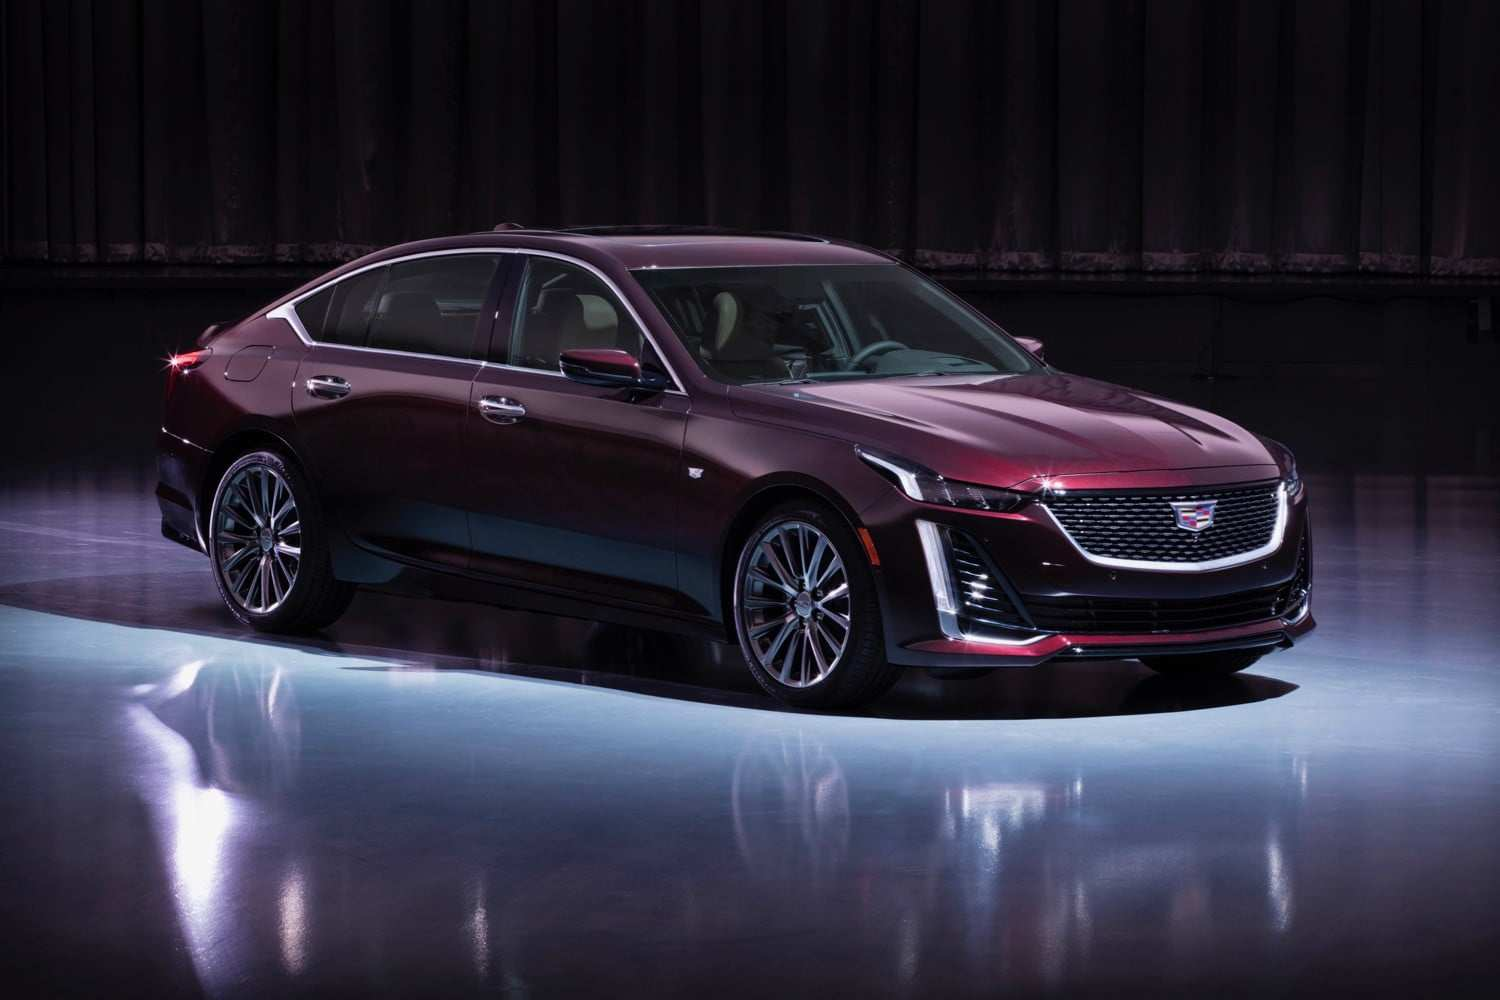 86 New 2020 Cadillac Cars Engine